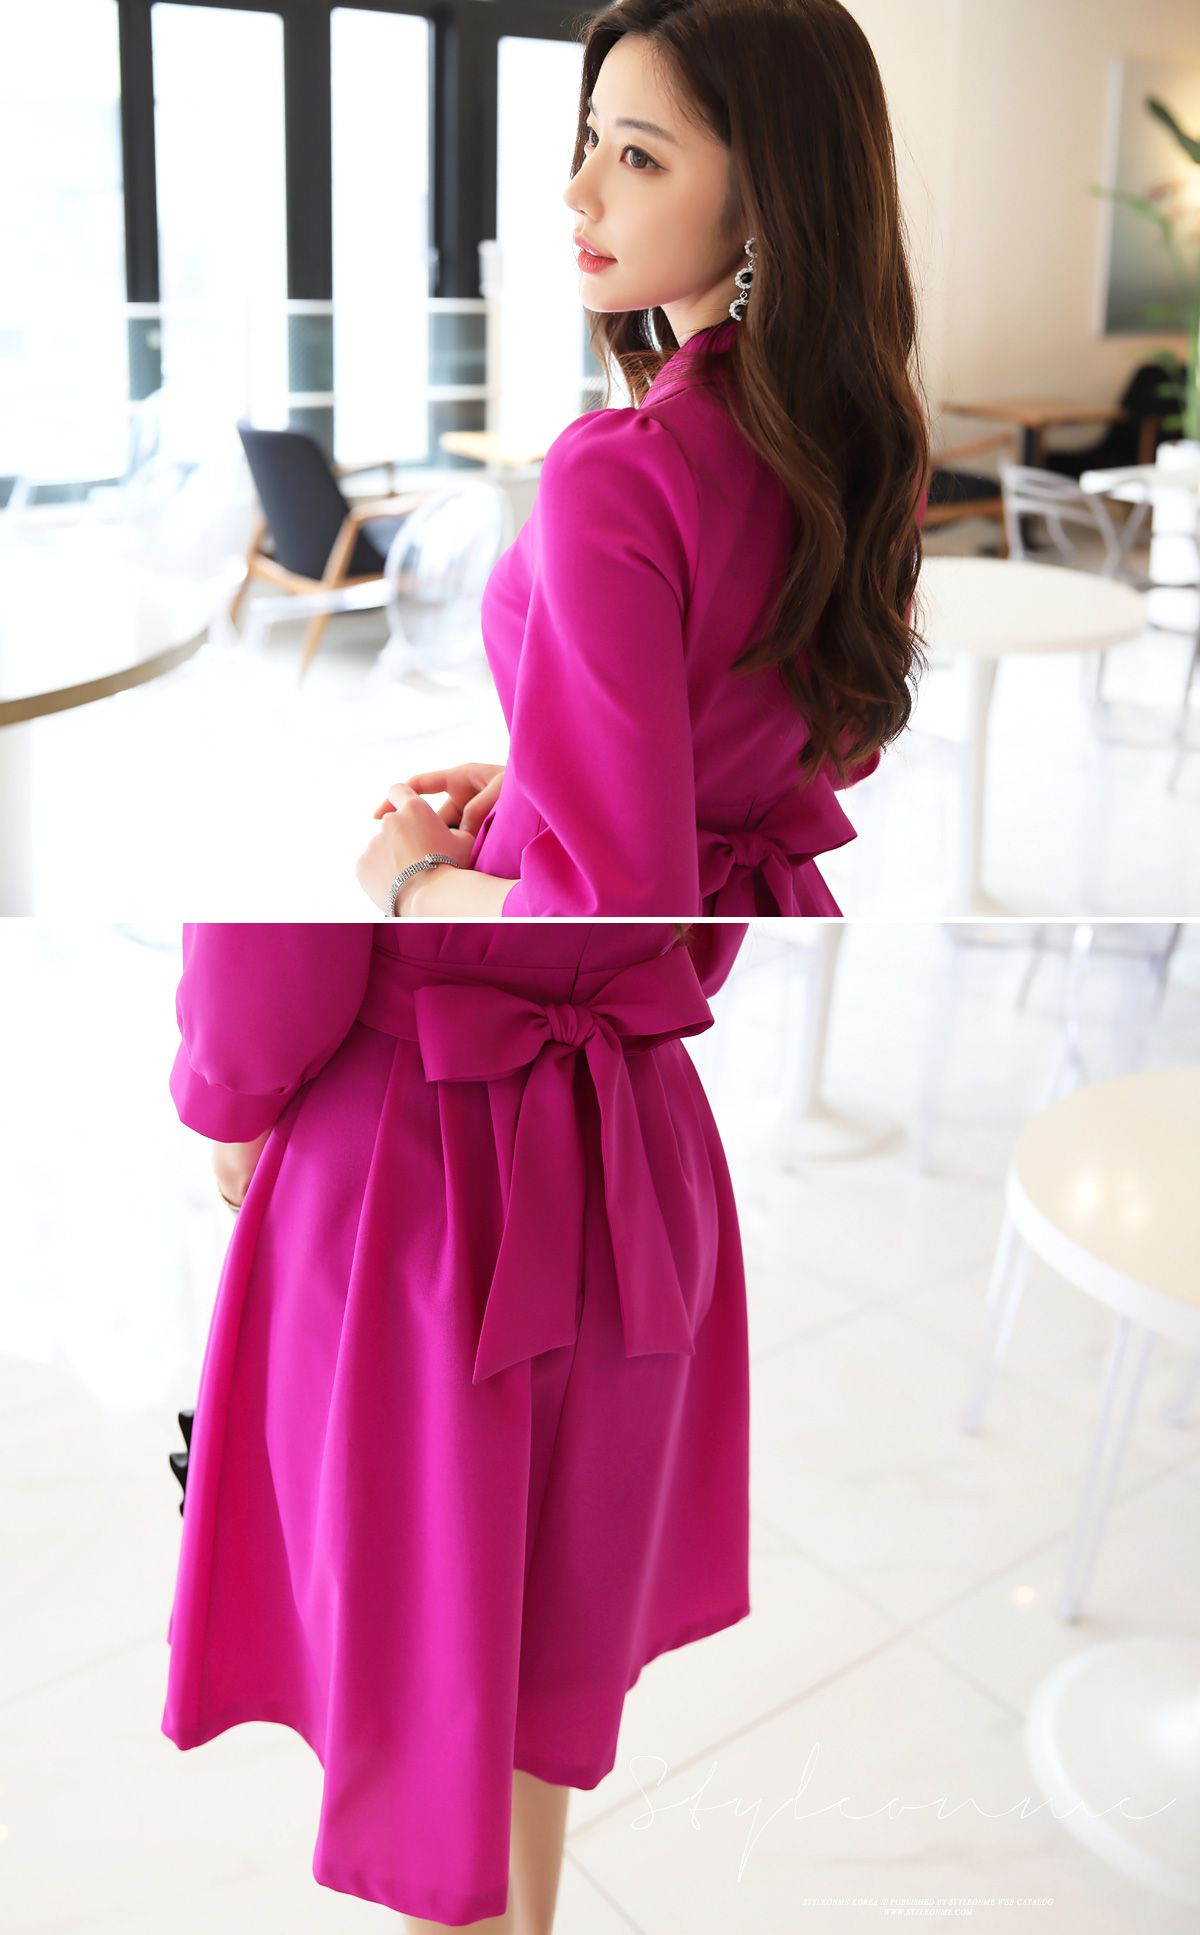 Vivid Color Back Ribbon Tie Collared Dress | Shopping mall, Mall and ...